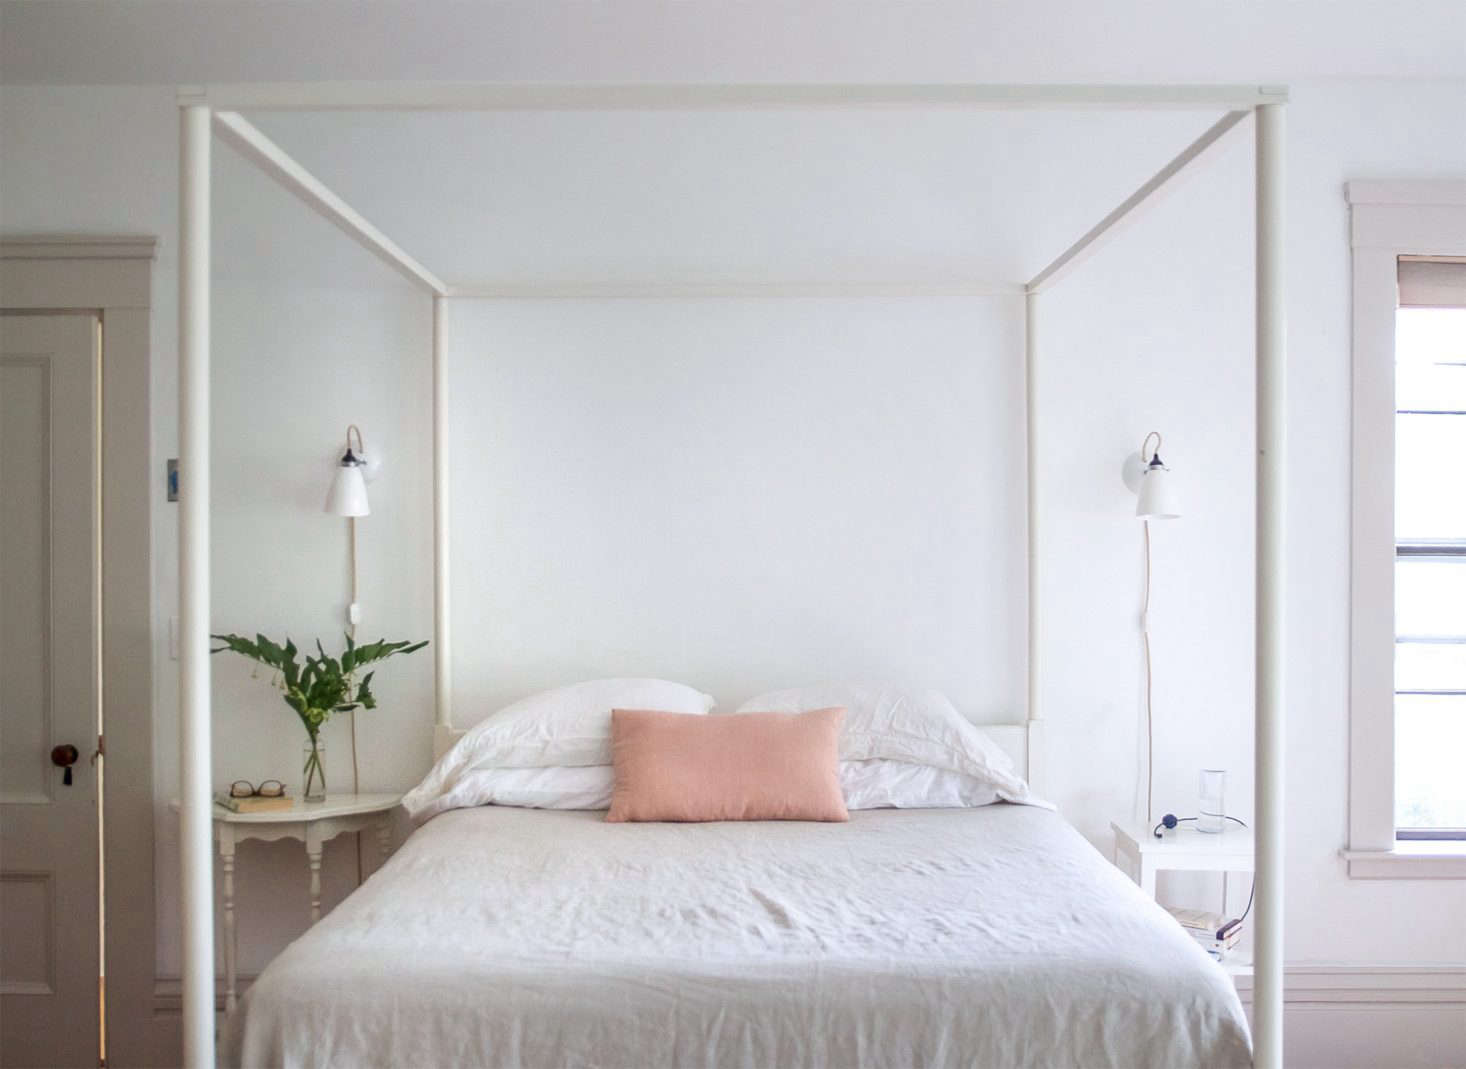 Photograph by Justine Hand for Remodelista, fromDomestic Science: How to Clean a Mattress.